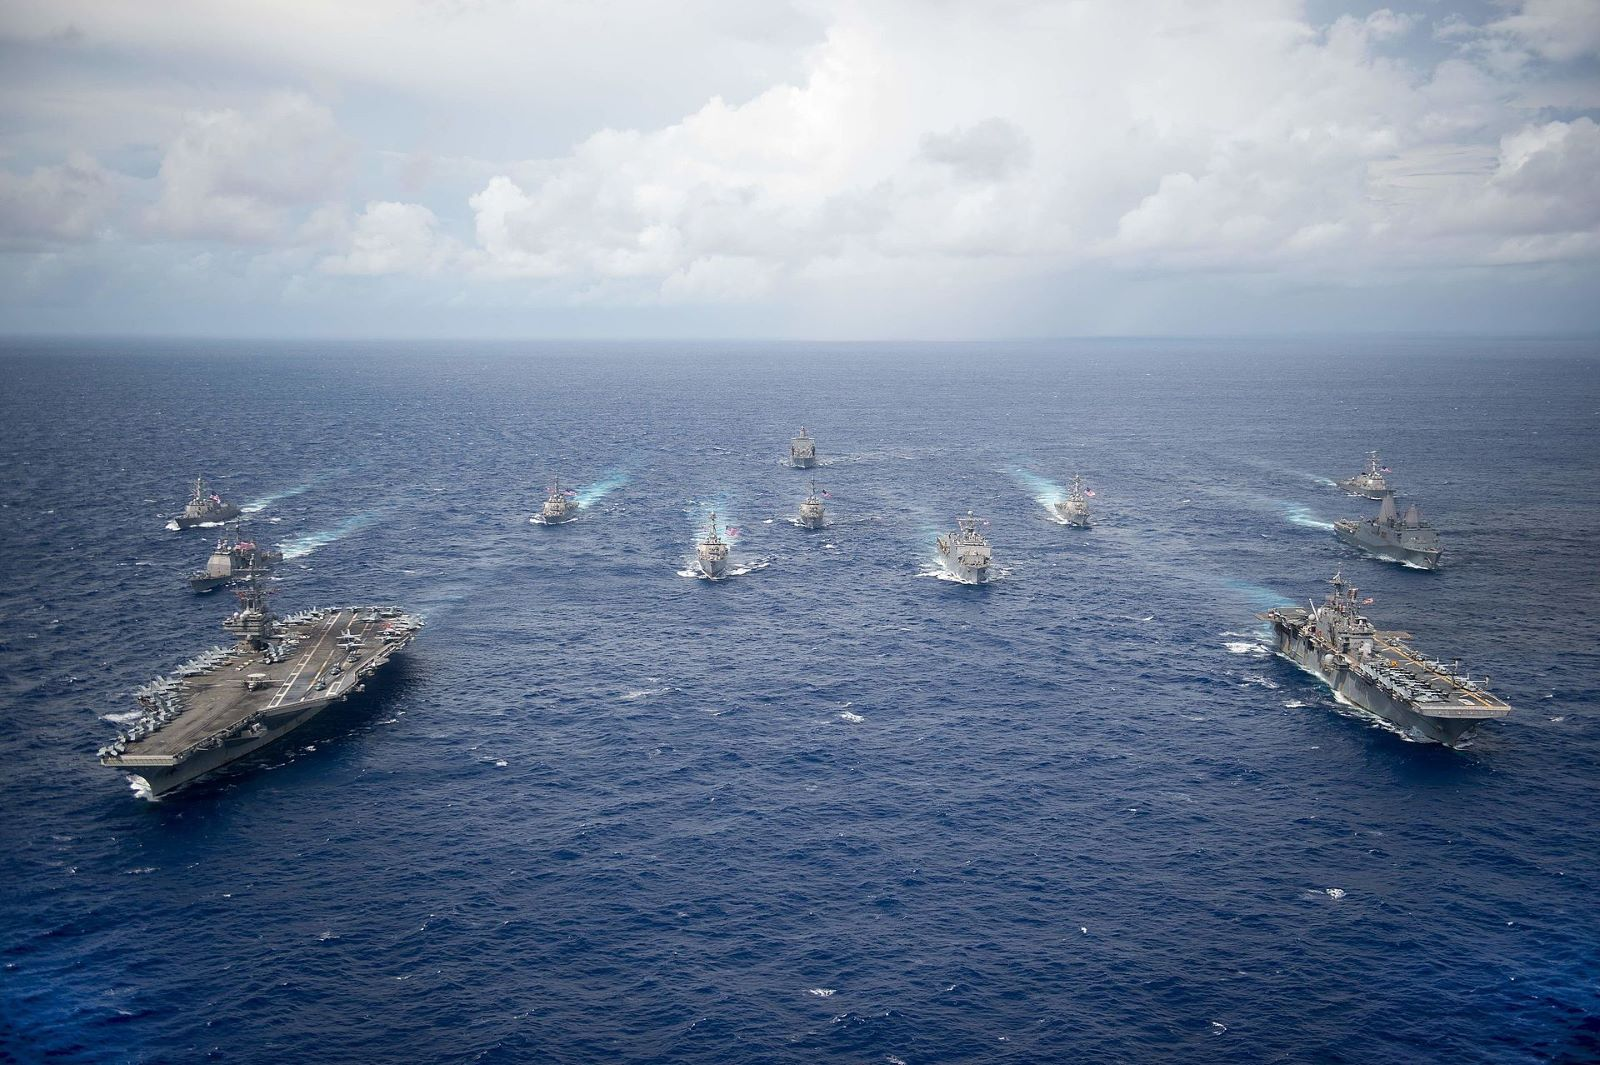 USS Ronald Reagan leads Carrier Strike Group Five and Expeditionary Strike Group Seven ships in an exercise in 2016. (Photo: US Navy/Creative Commons)